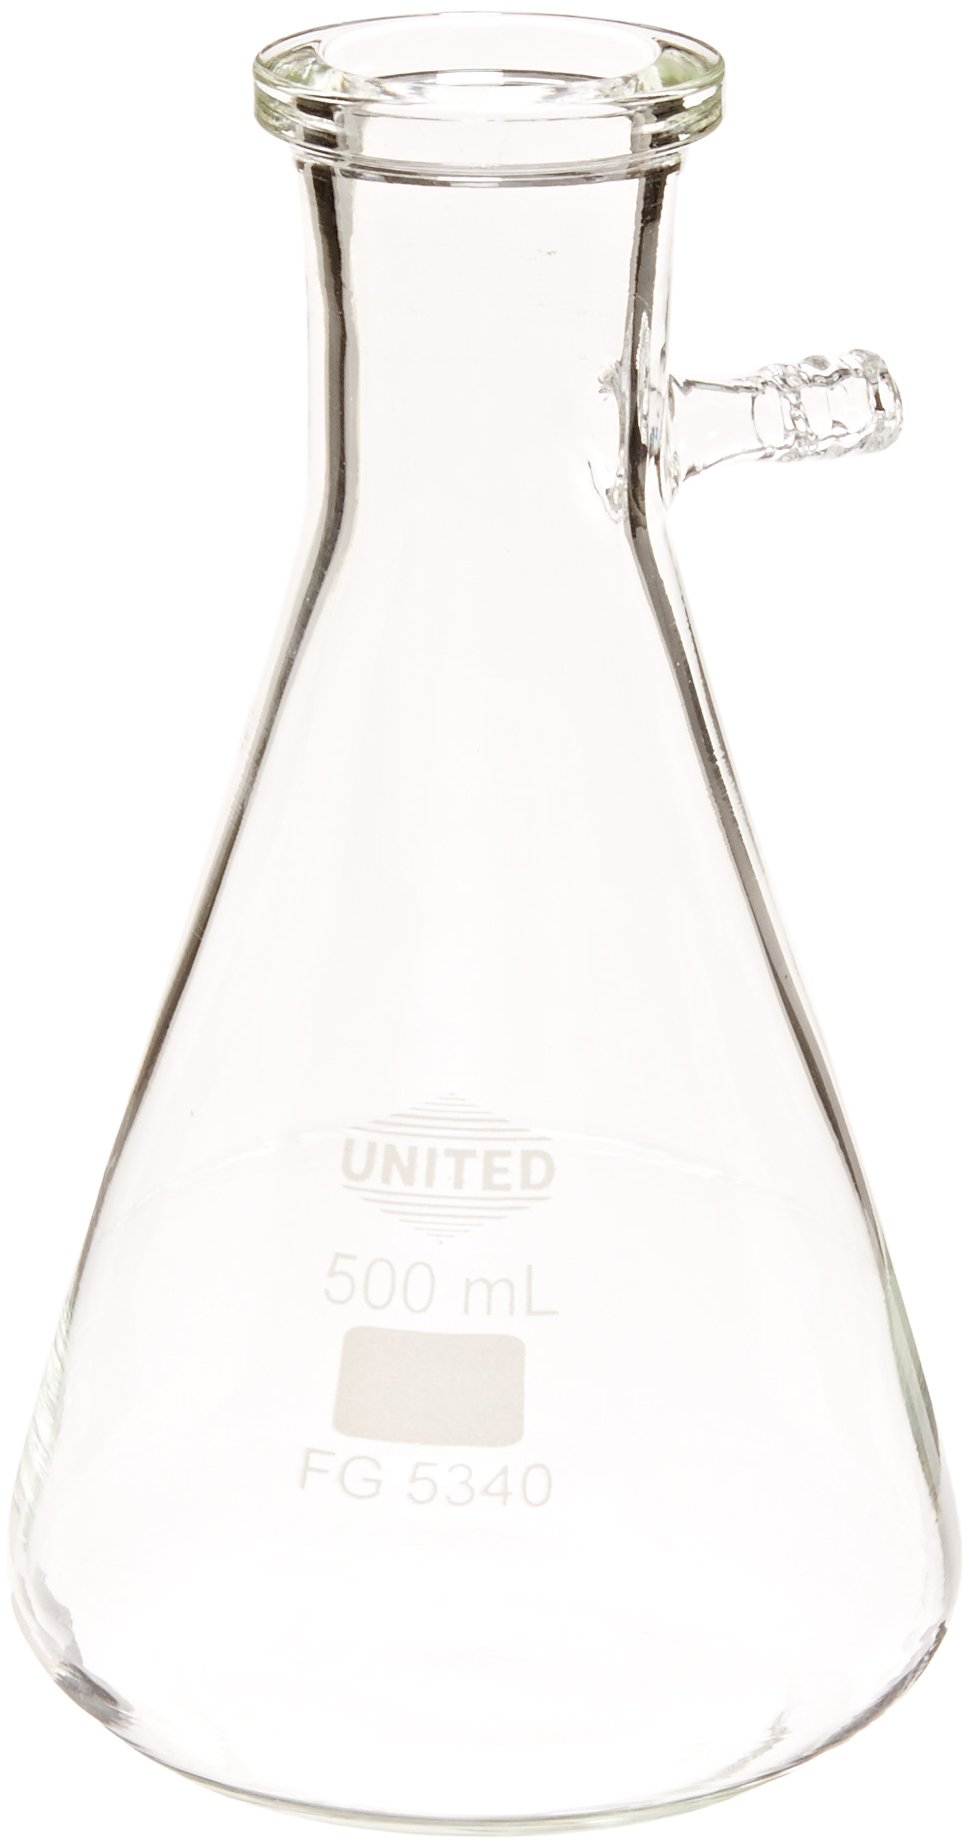 United Scientific FG5340-500 Borosilicate Glass Heavy Wall Filtering Flask, Bolt Neck with Tubulation, 500ml Capacity by United Scientific Supplies